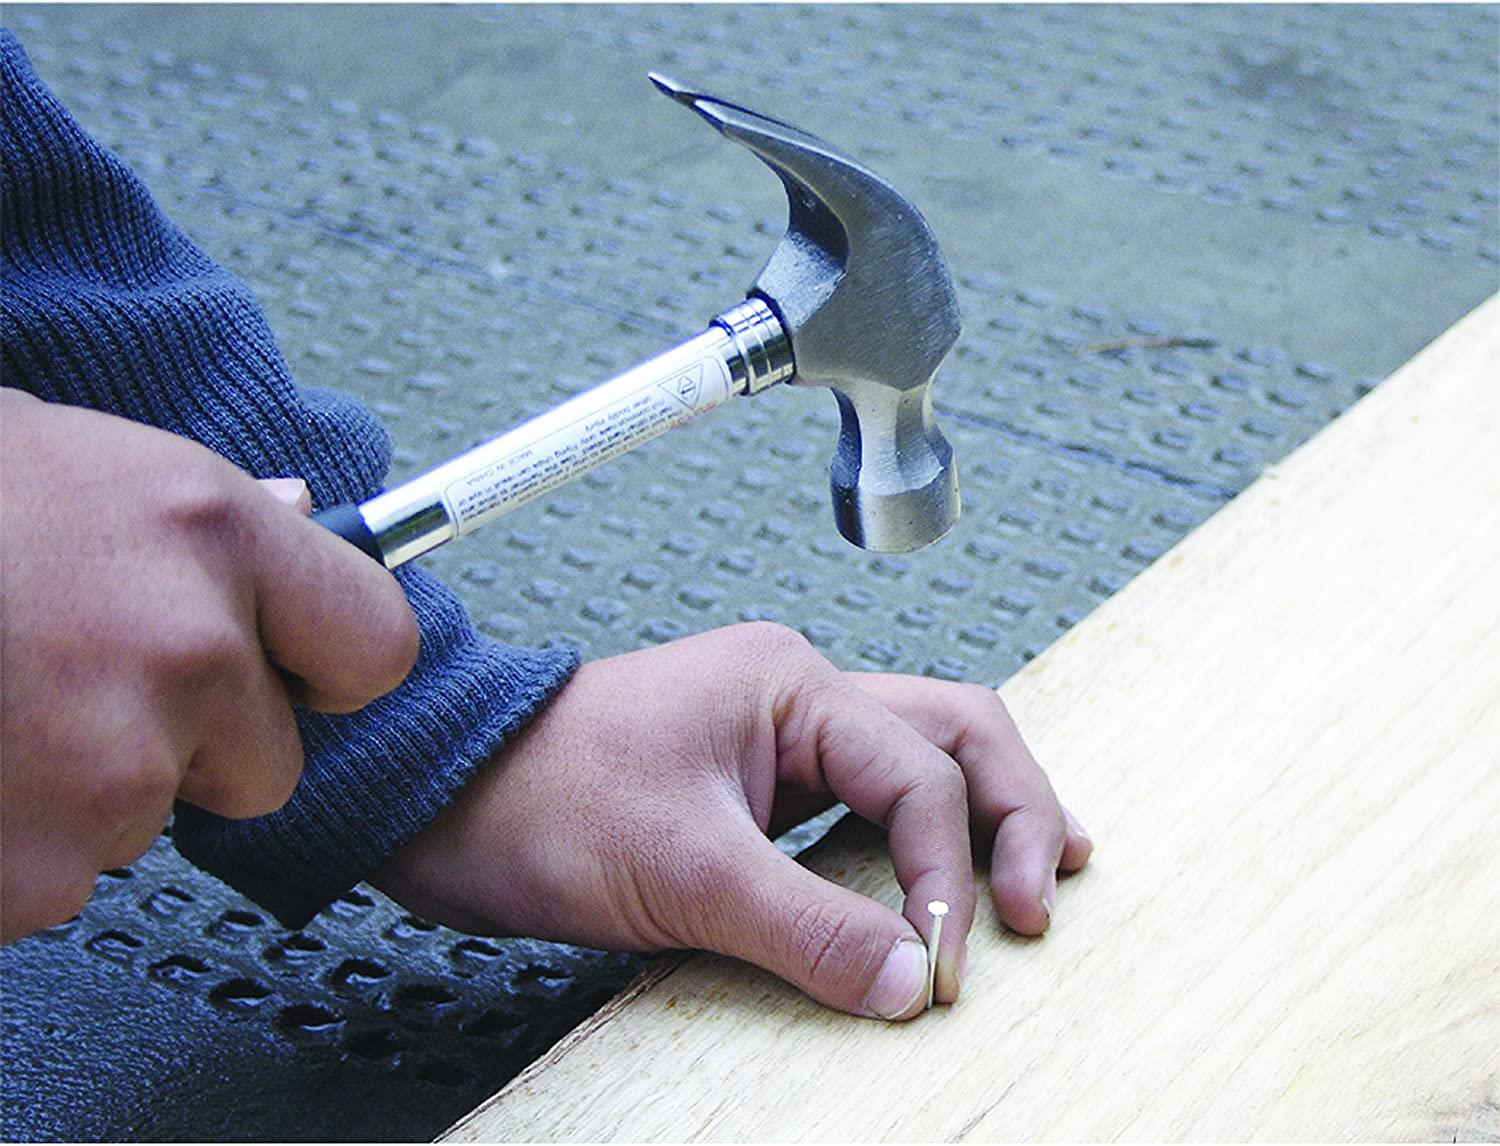 10 Tools You Should Always Have On-Hand For DIY Projects and Home Repairs